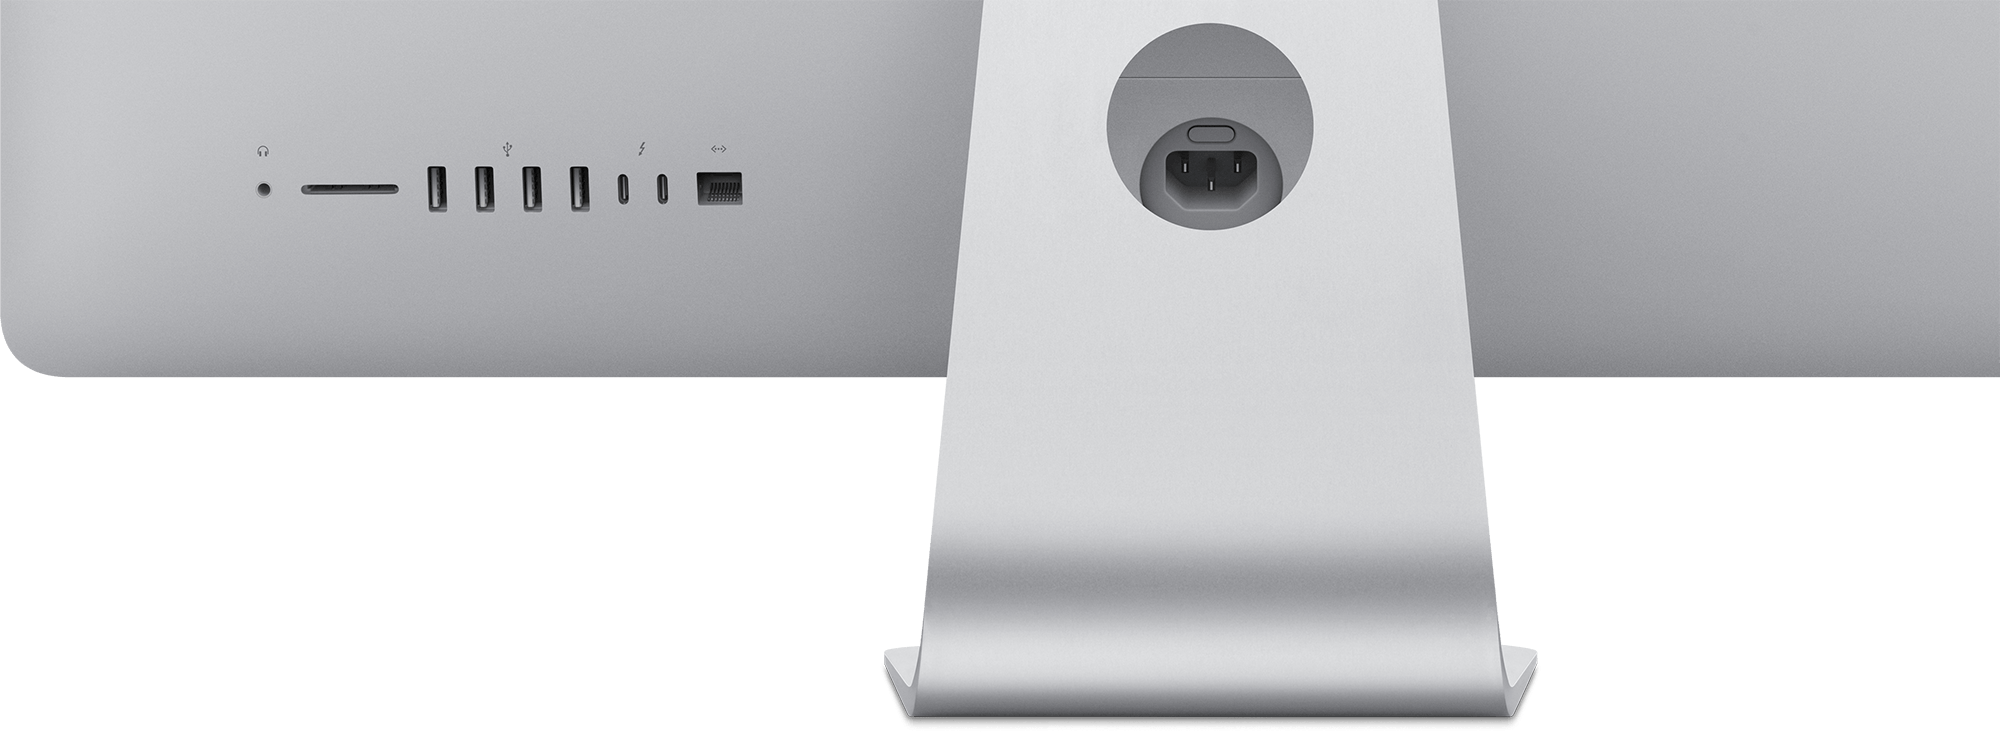 iMac connections